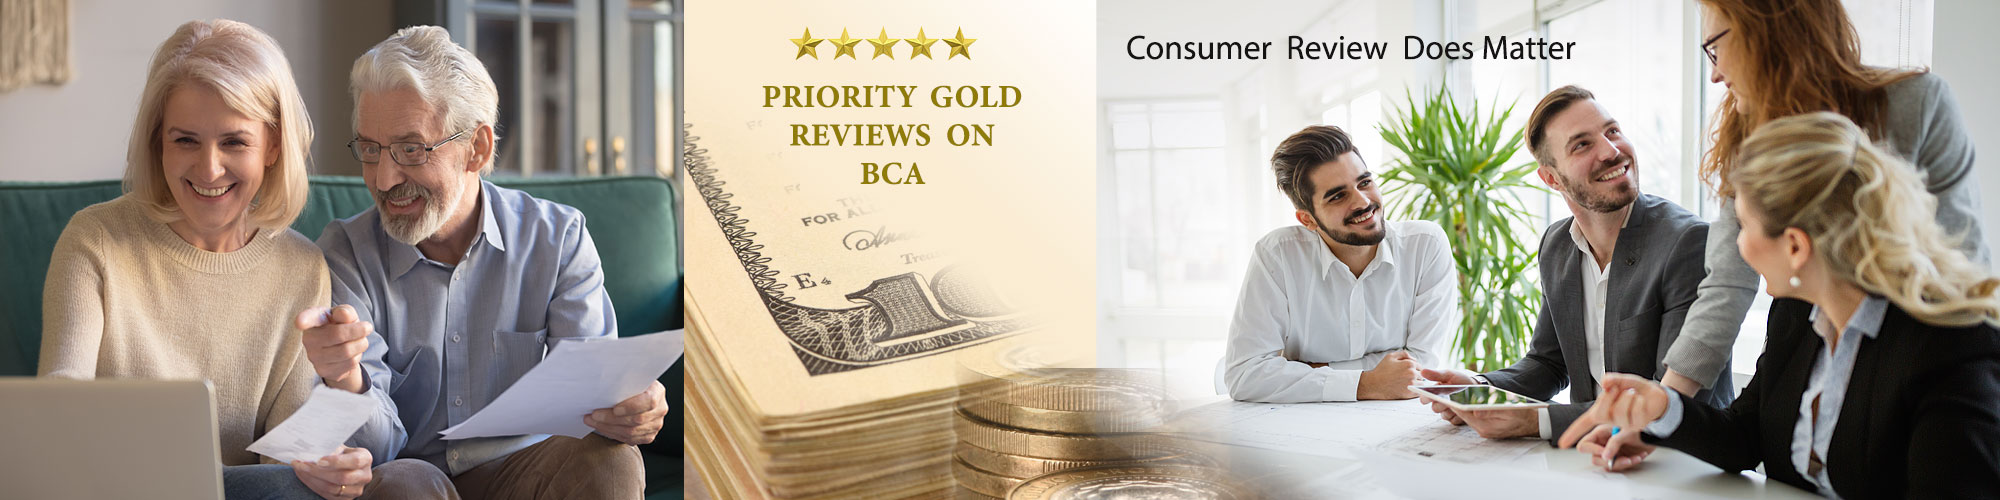 Priority Gold Reviews on Business Consumer Alliance